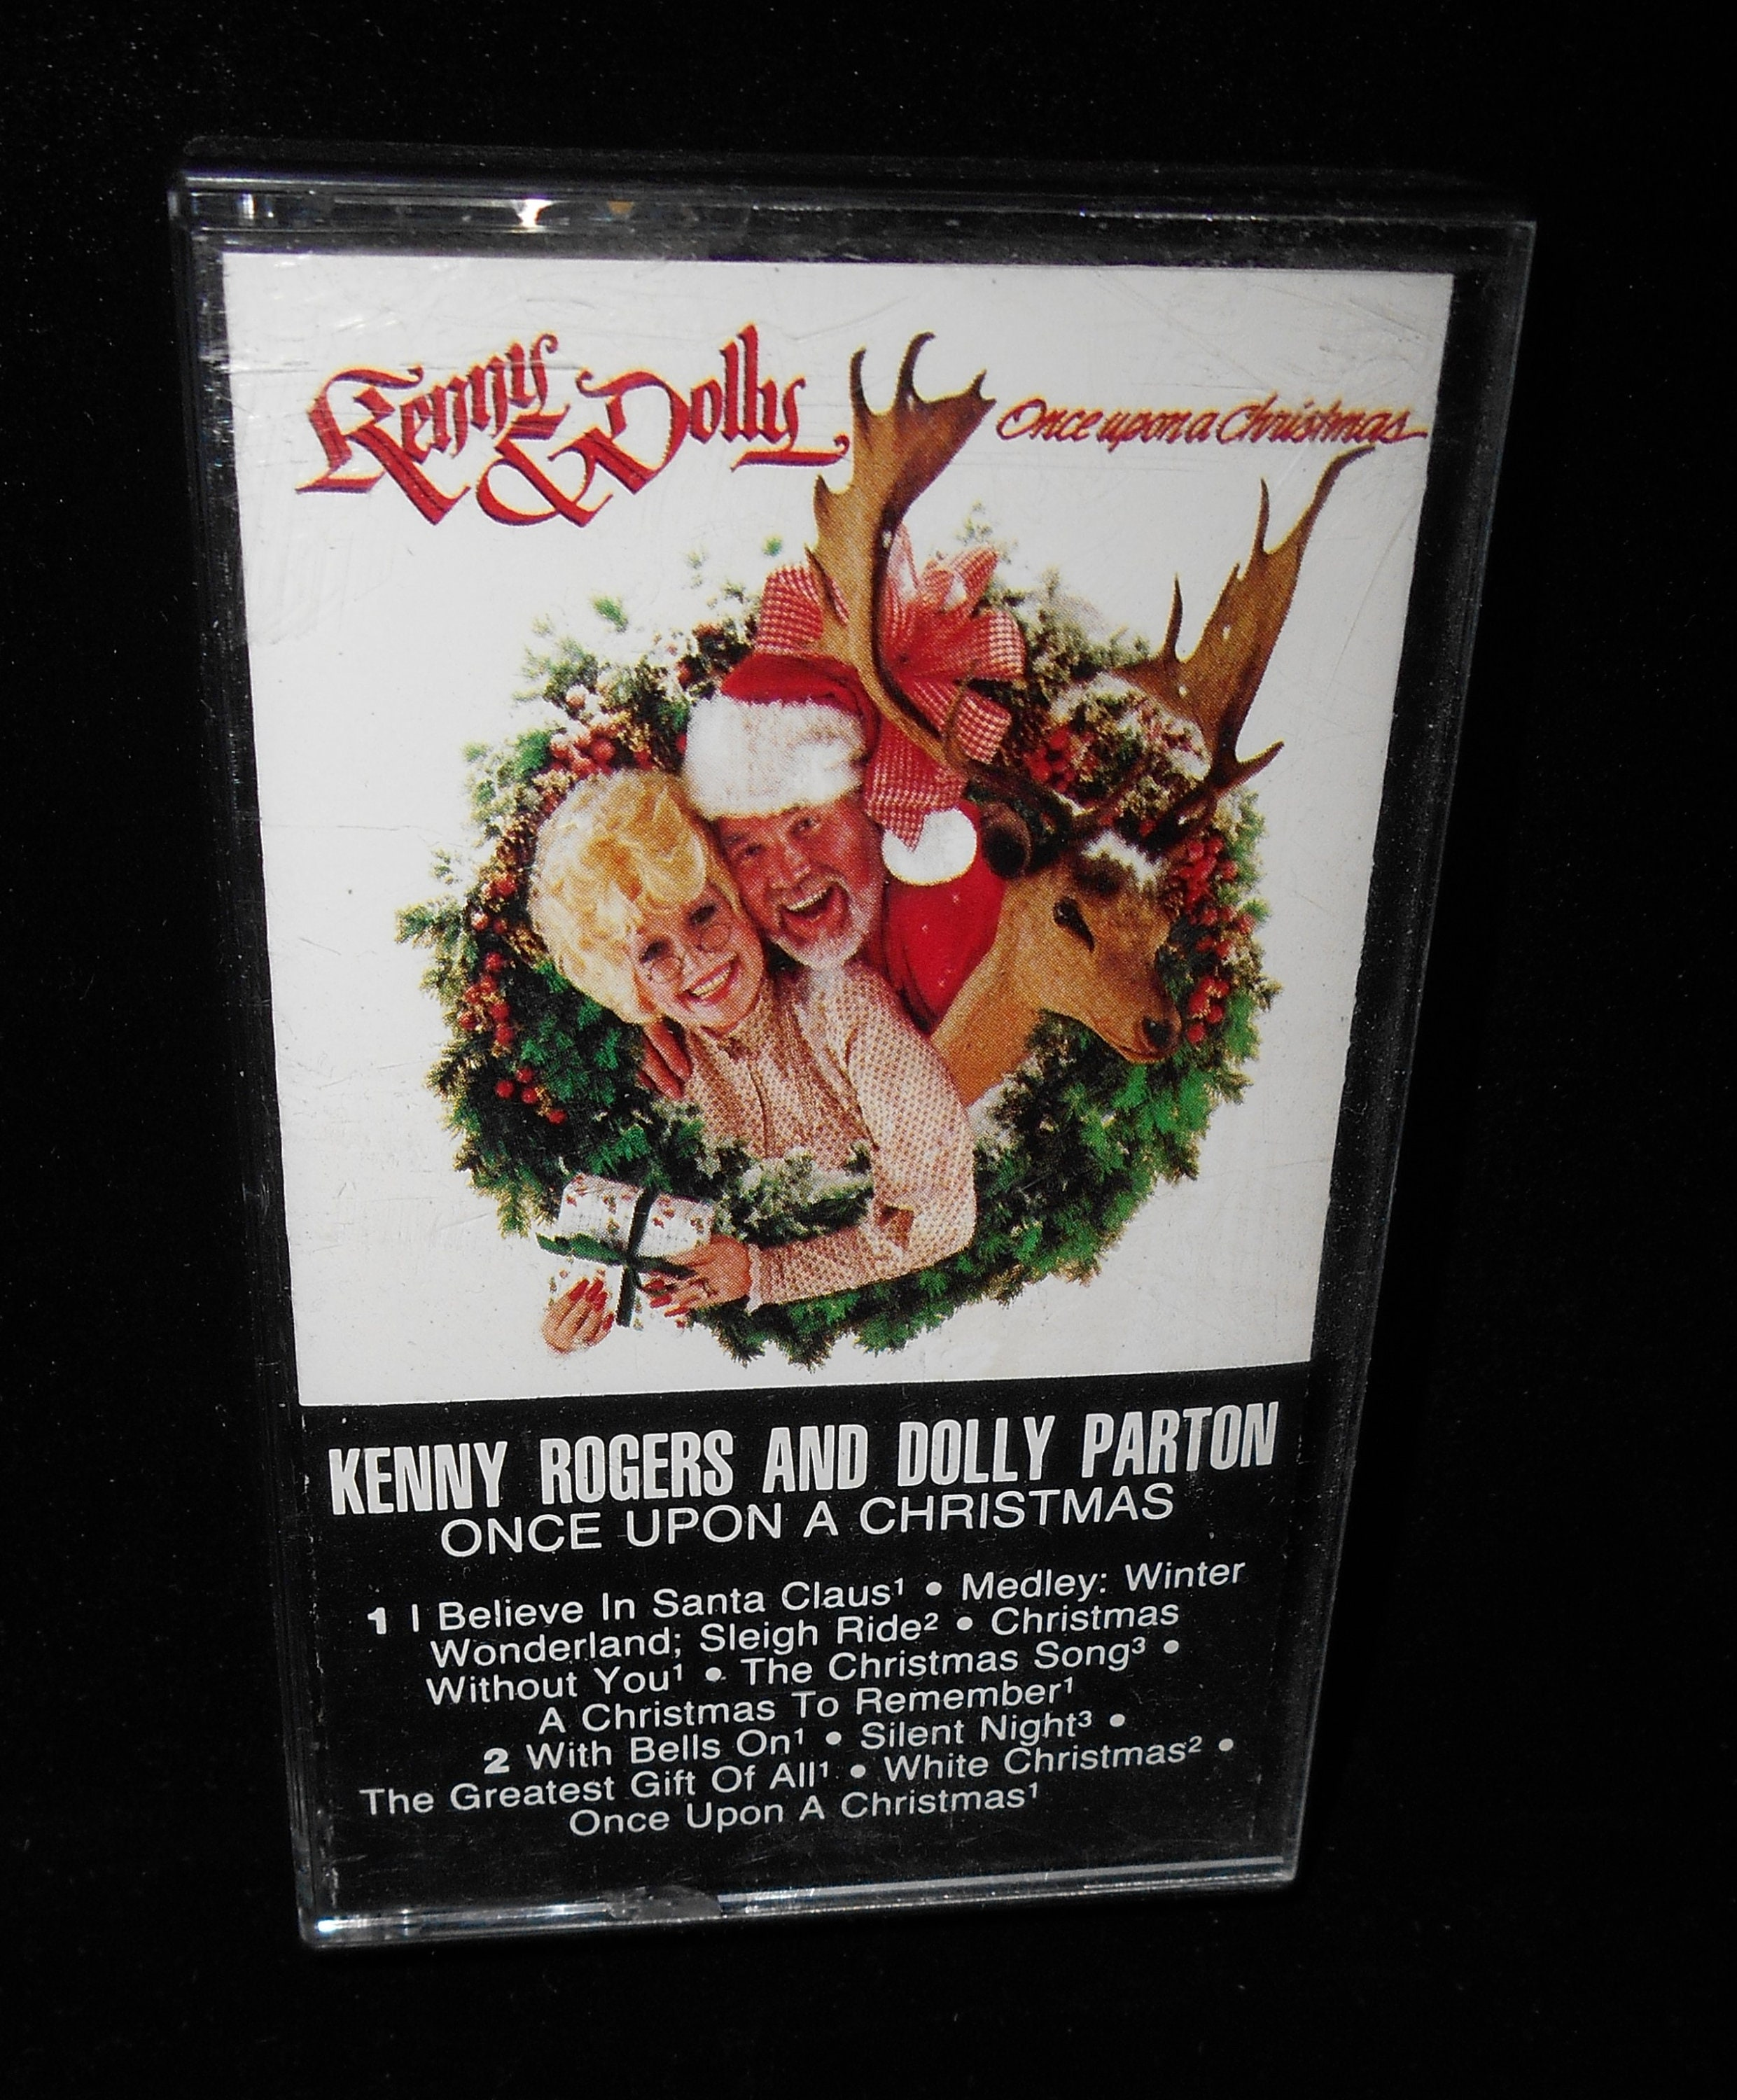 Dolly Parton Kenny Rogers Once Upon a Christmas by Cassette | Etsy